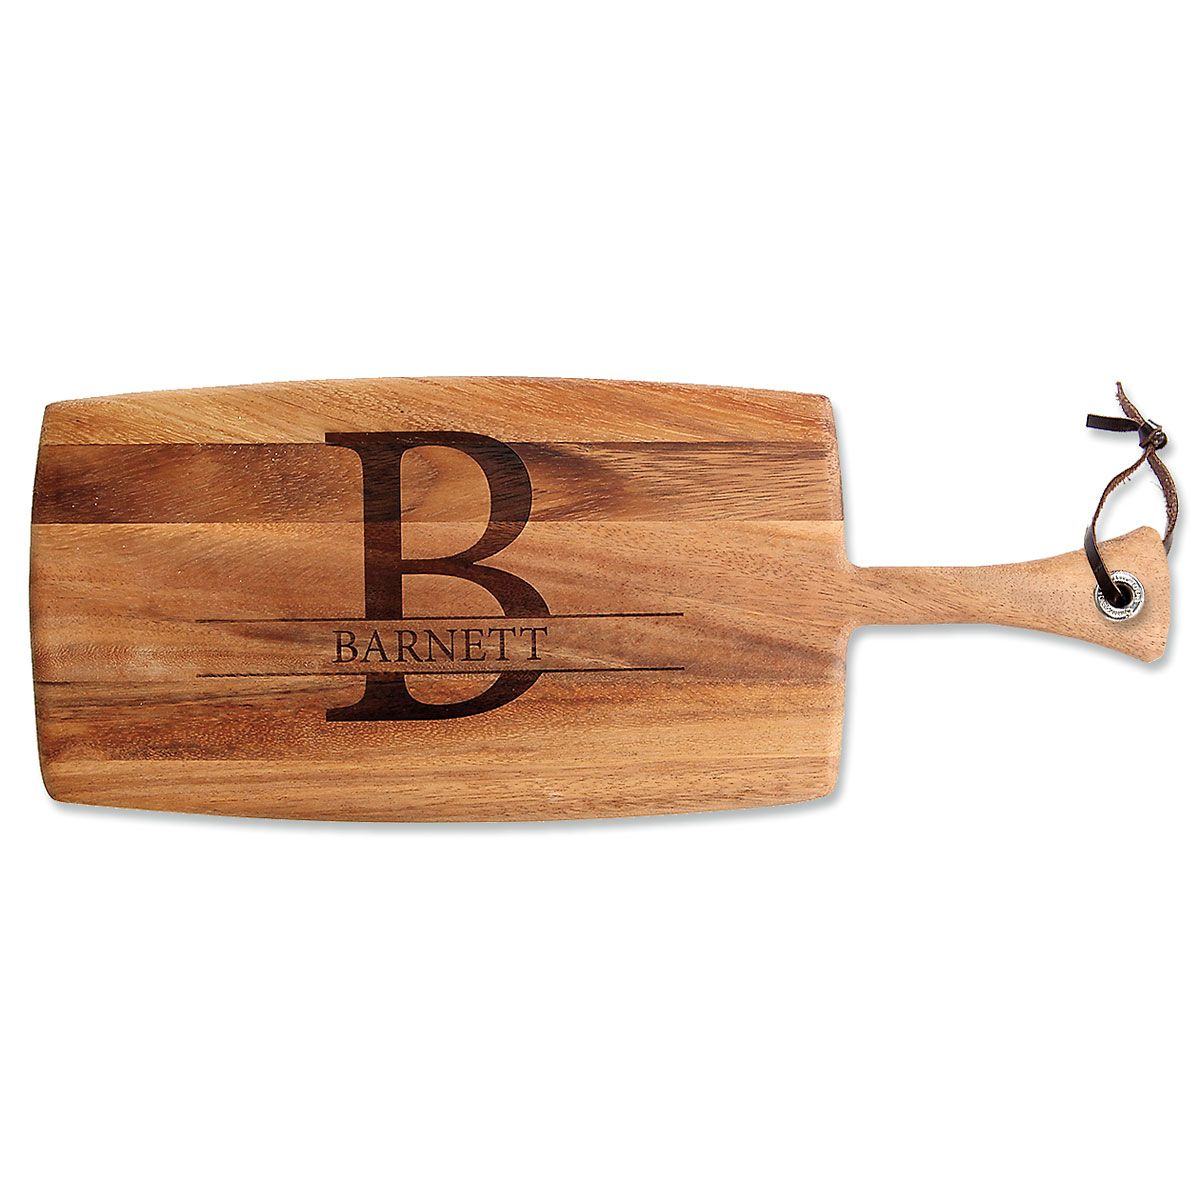 Initial & Name Engraved Acacia Wood Paddle Cutting Board